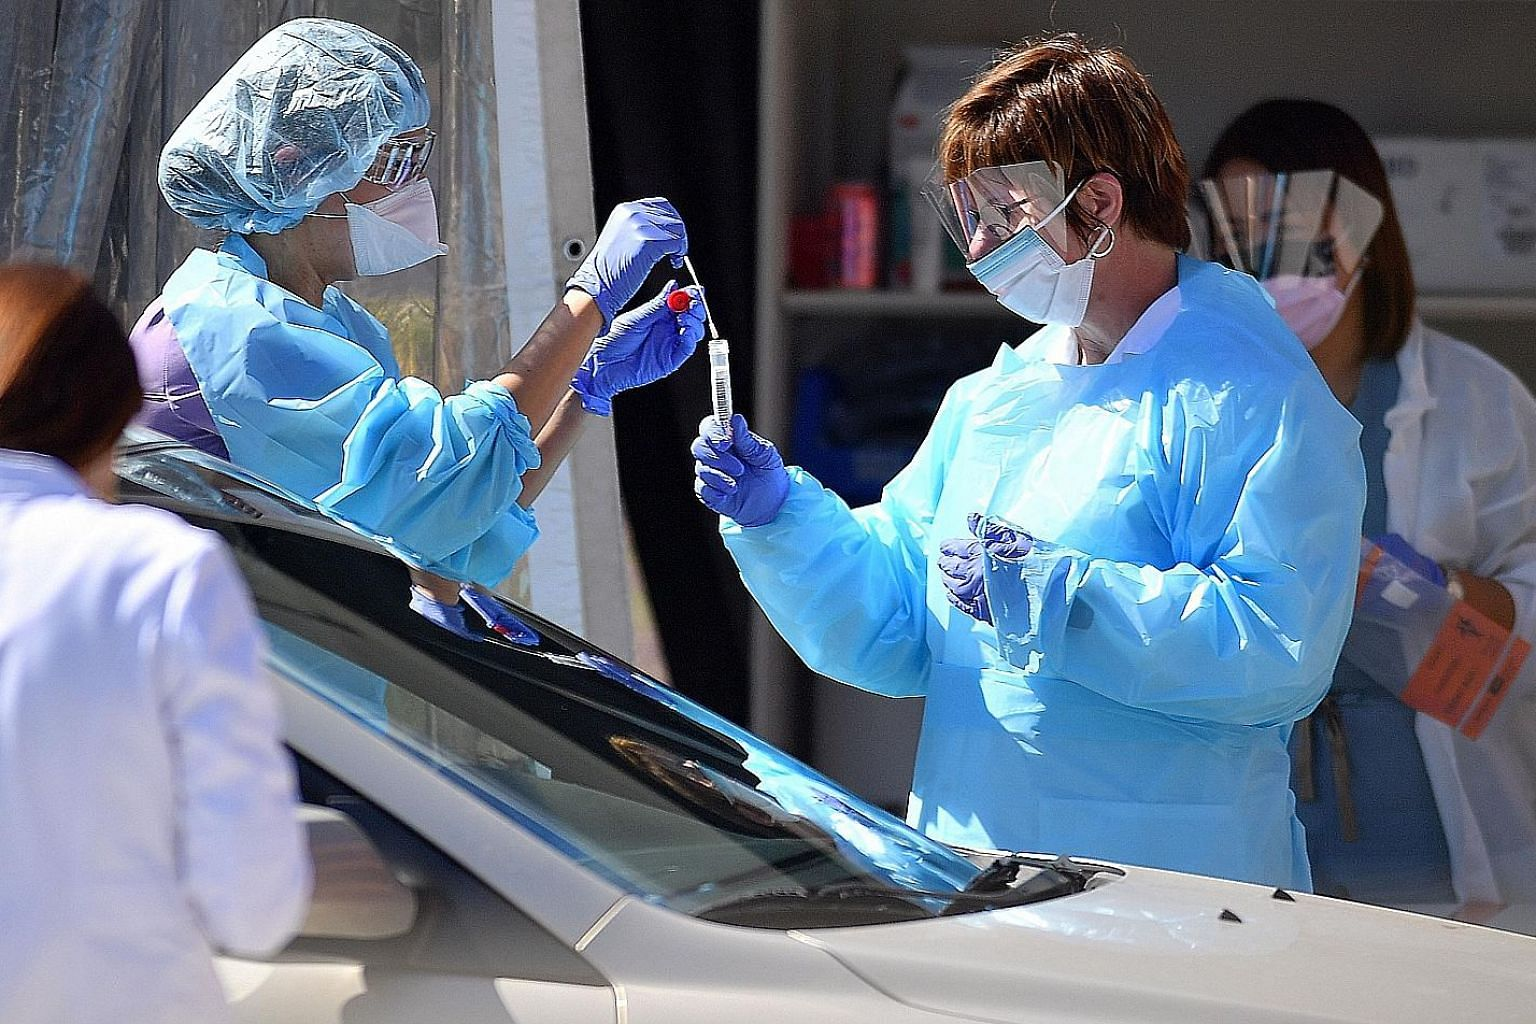 Medical workers collecting samples at a drive-through testing facility in San Francisco in March. The United States is among countries that have administered saliva tests to detect Covid-19. PHOTO: AGENCE FRANCE-PRESSE